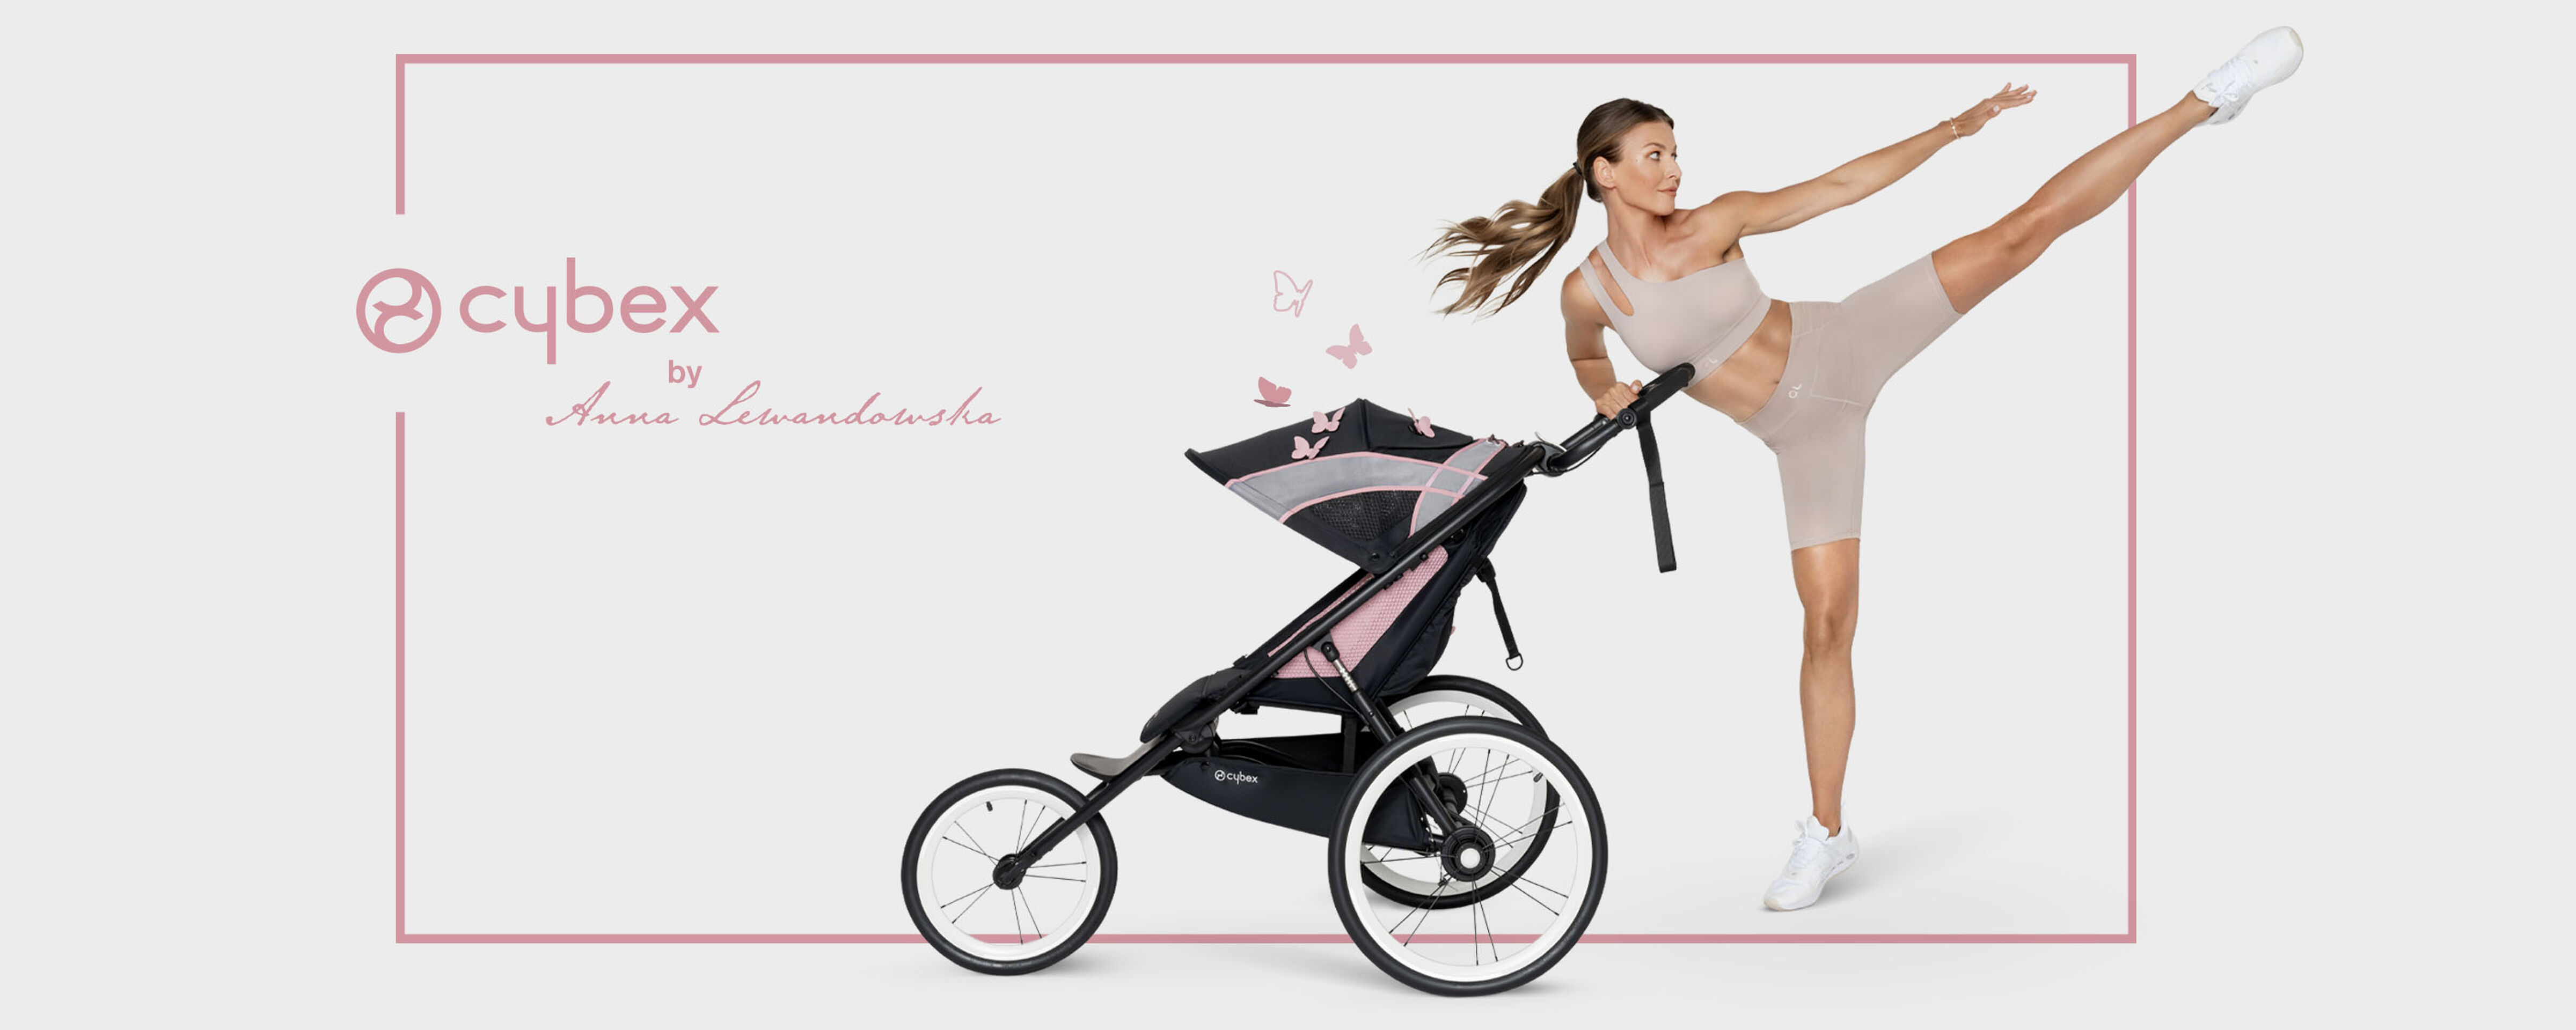 Cybex Gold by Anna Lewandowska Sport Collection Image Campaign